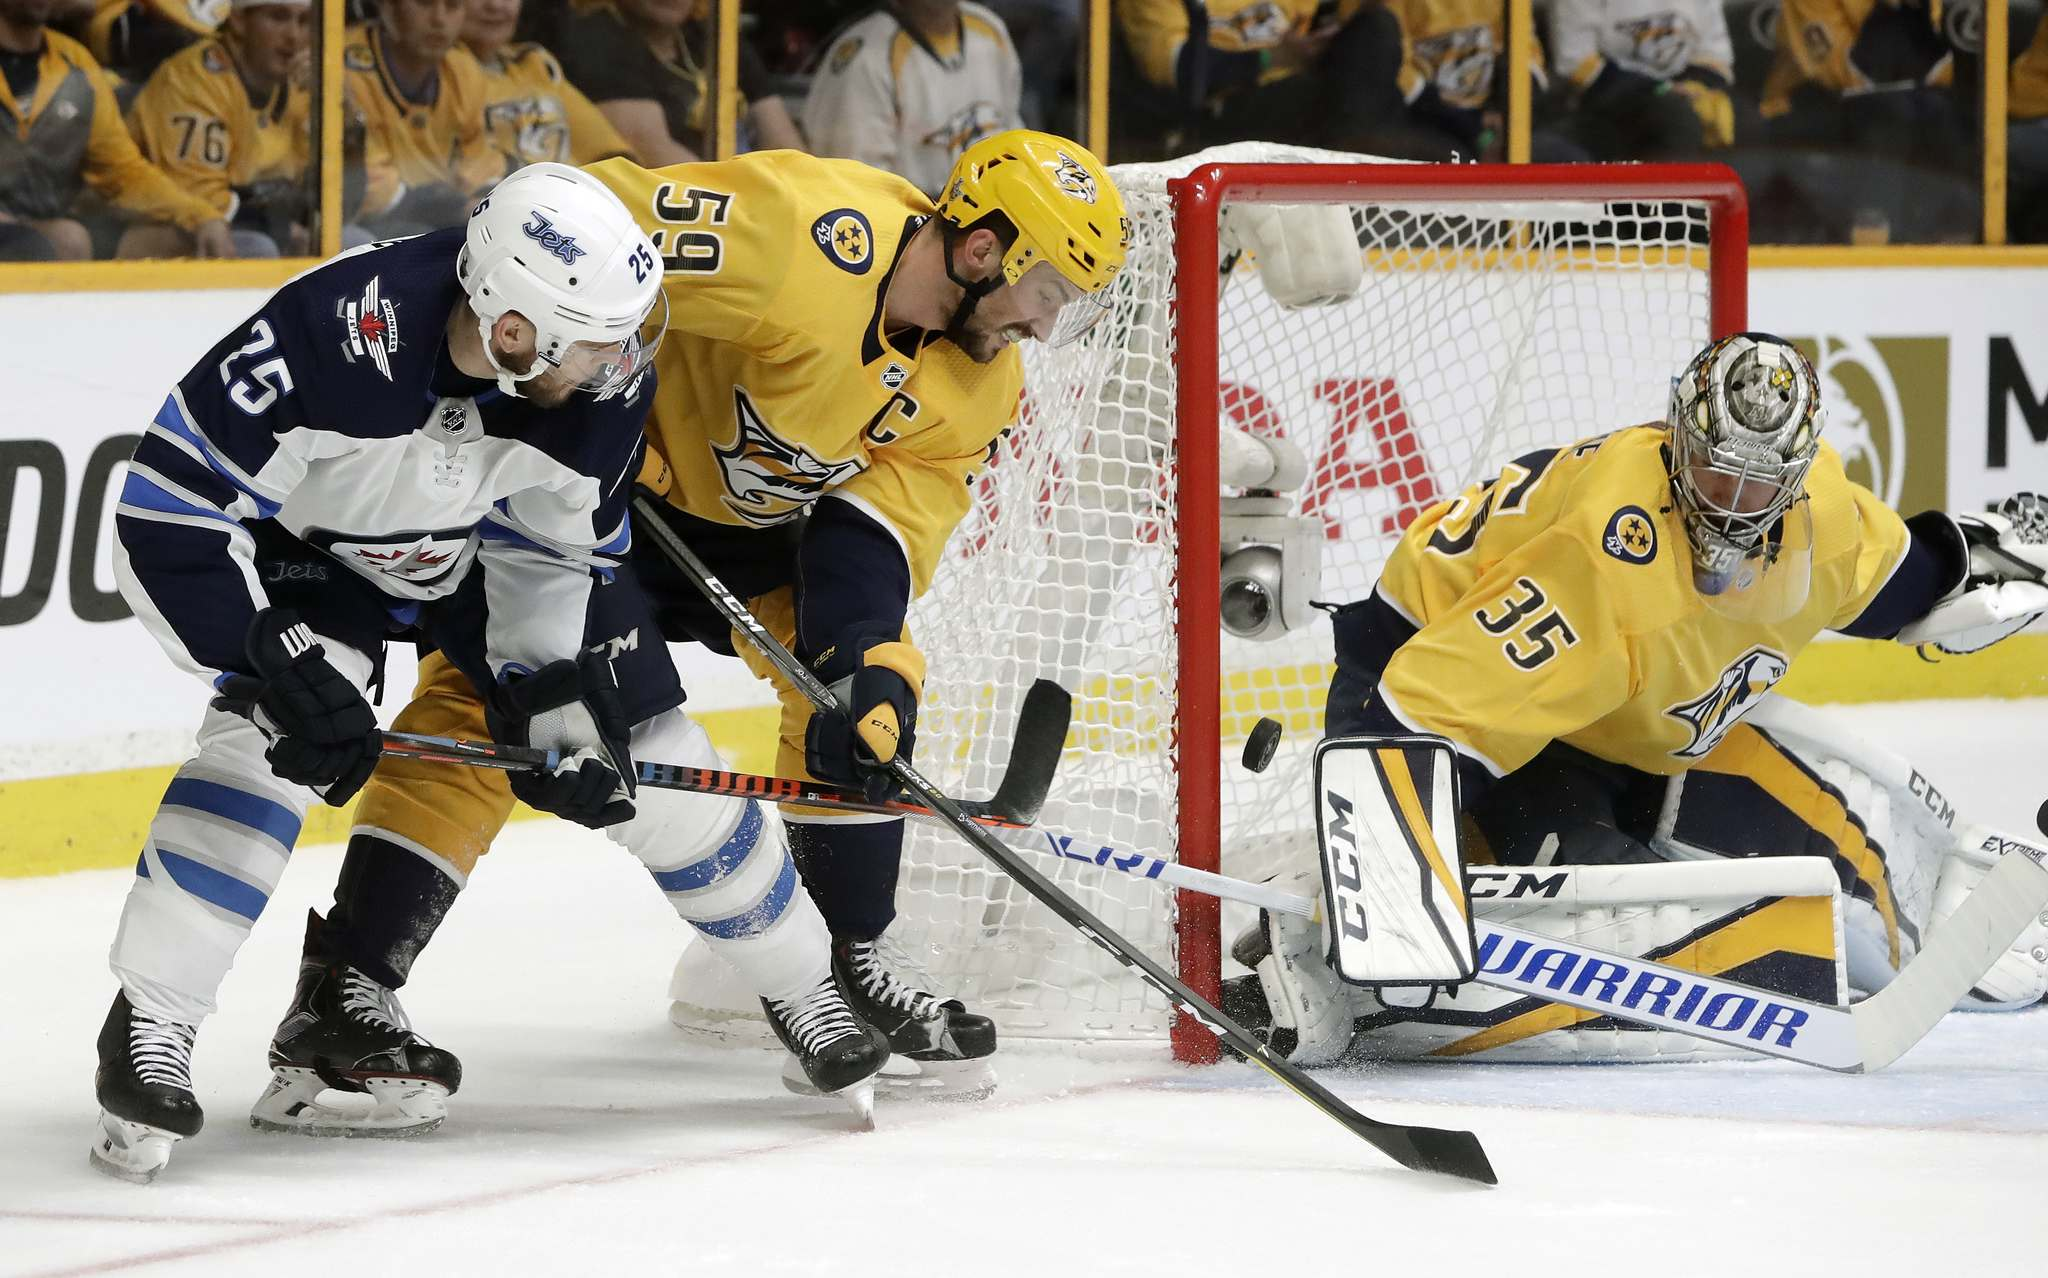 Winnipeg Jets centre Paul Stastny scores a goal between Nashville Predators Roman Josi and Pekka Rinne during the first period of Game 7 of their second-round playoff series in 2018.